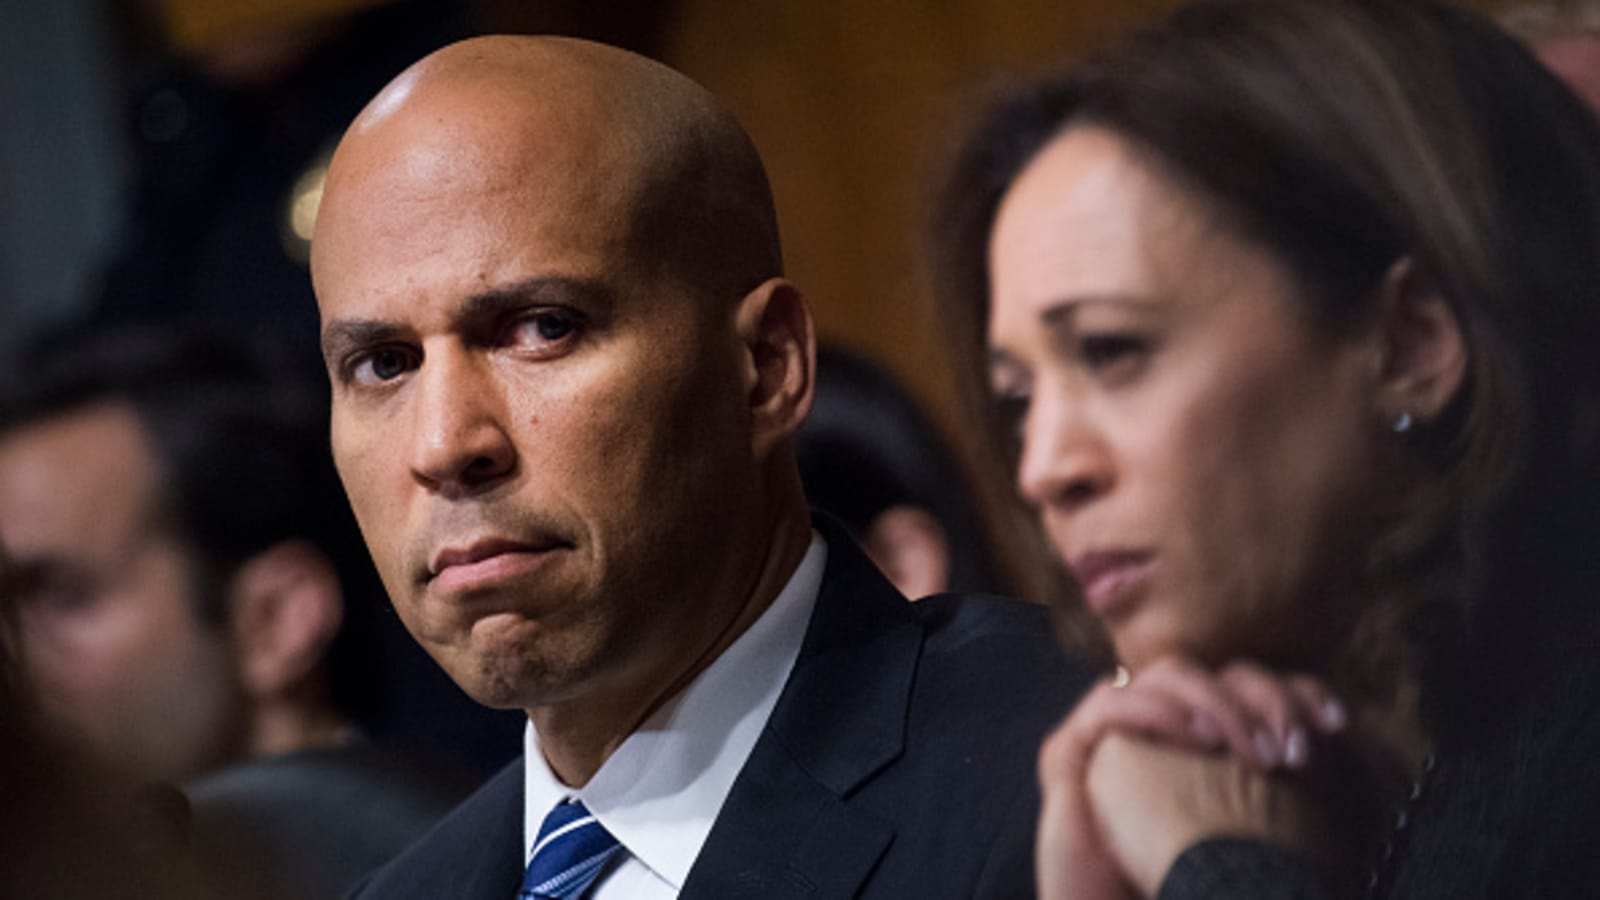 Cory Booker Kamala Harris Talk To Wall Street About Possible 2020 Campaign